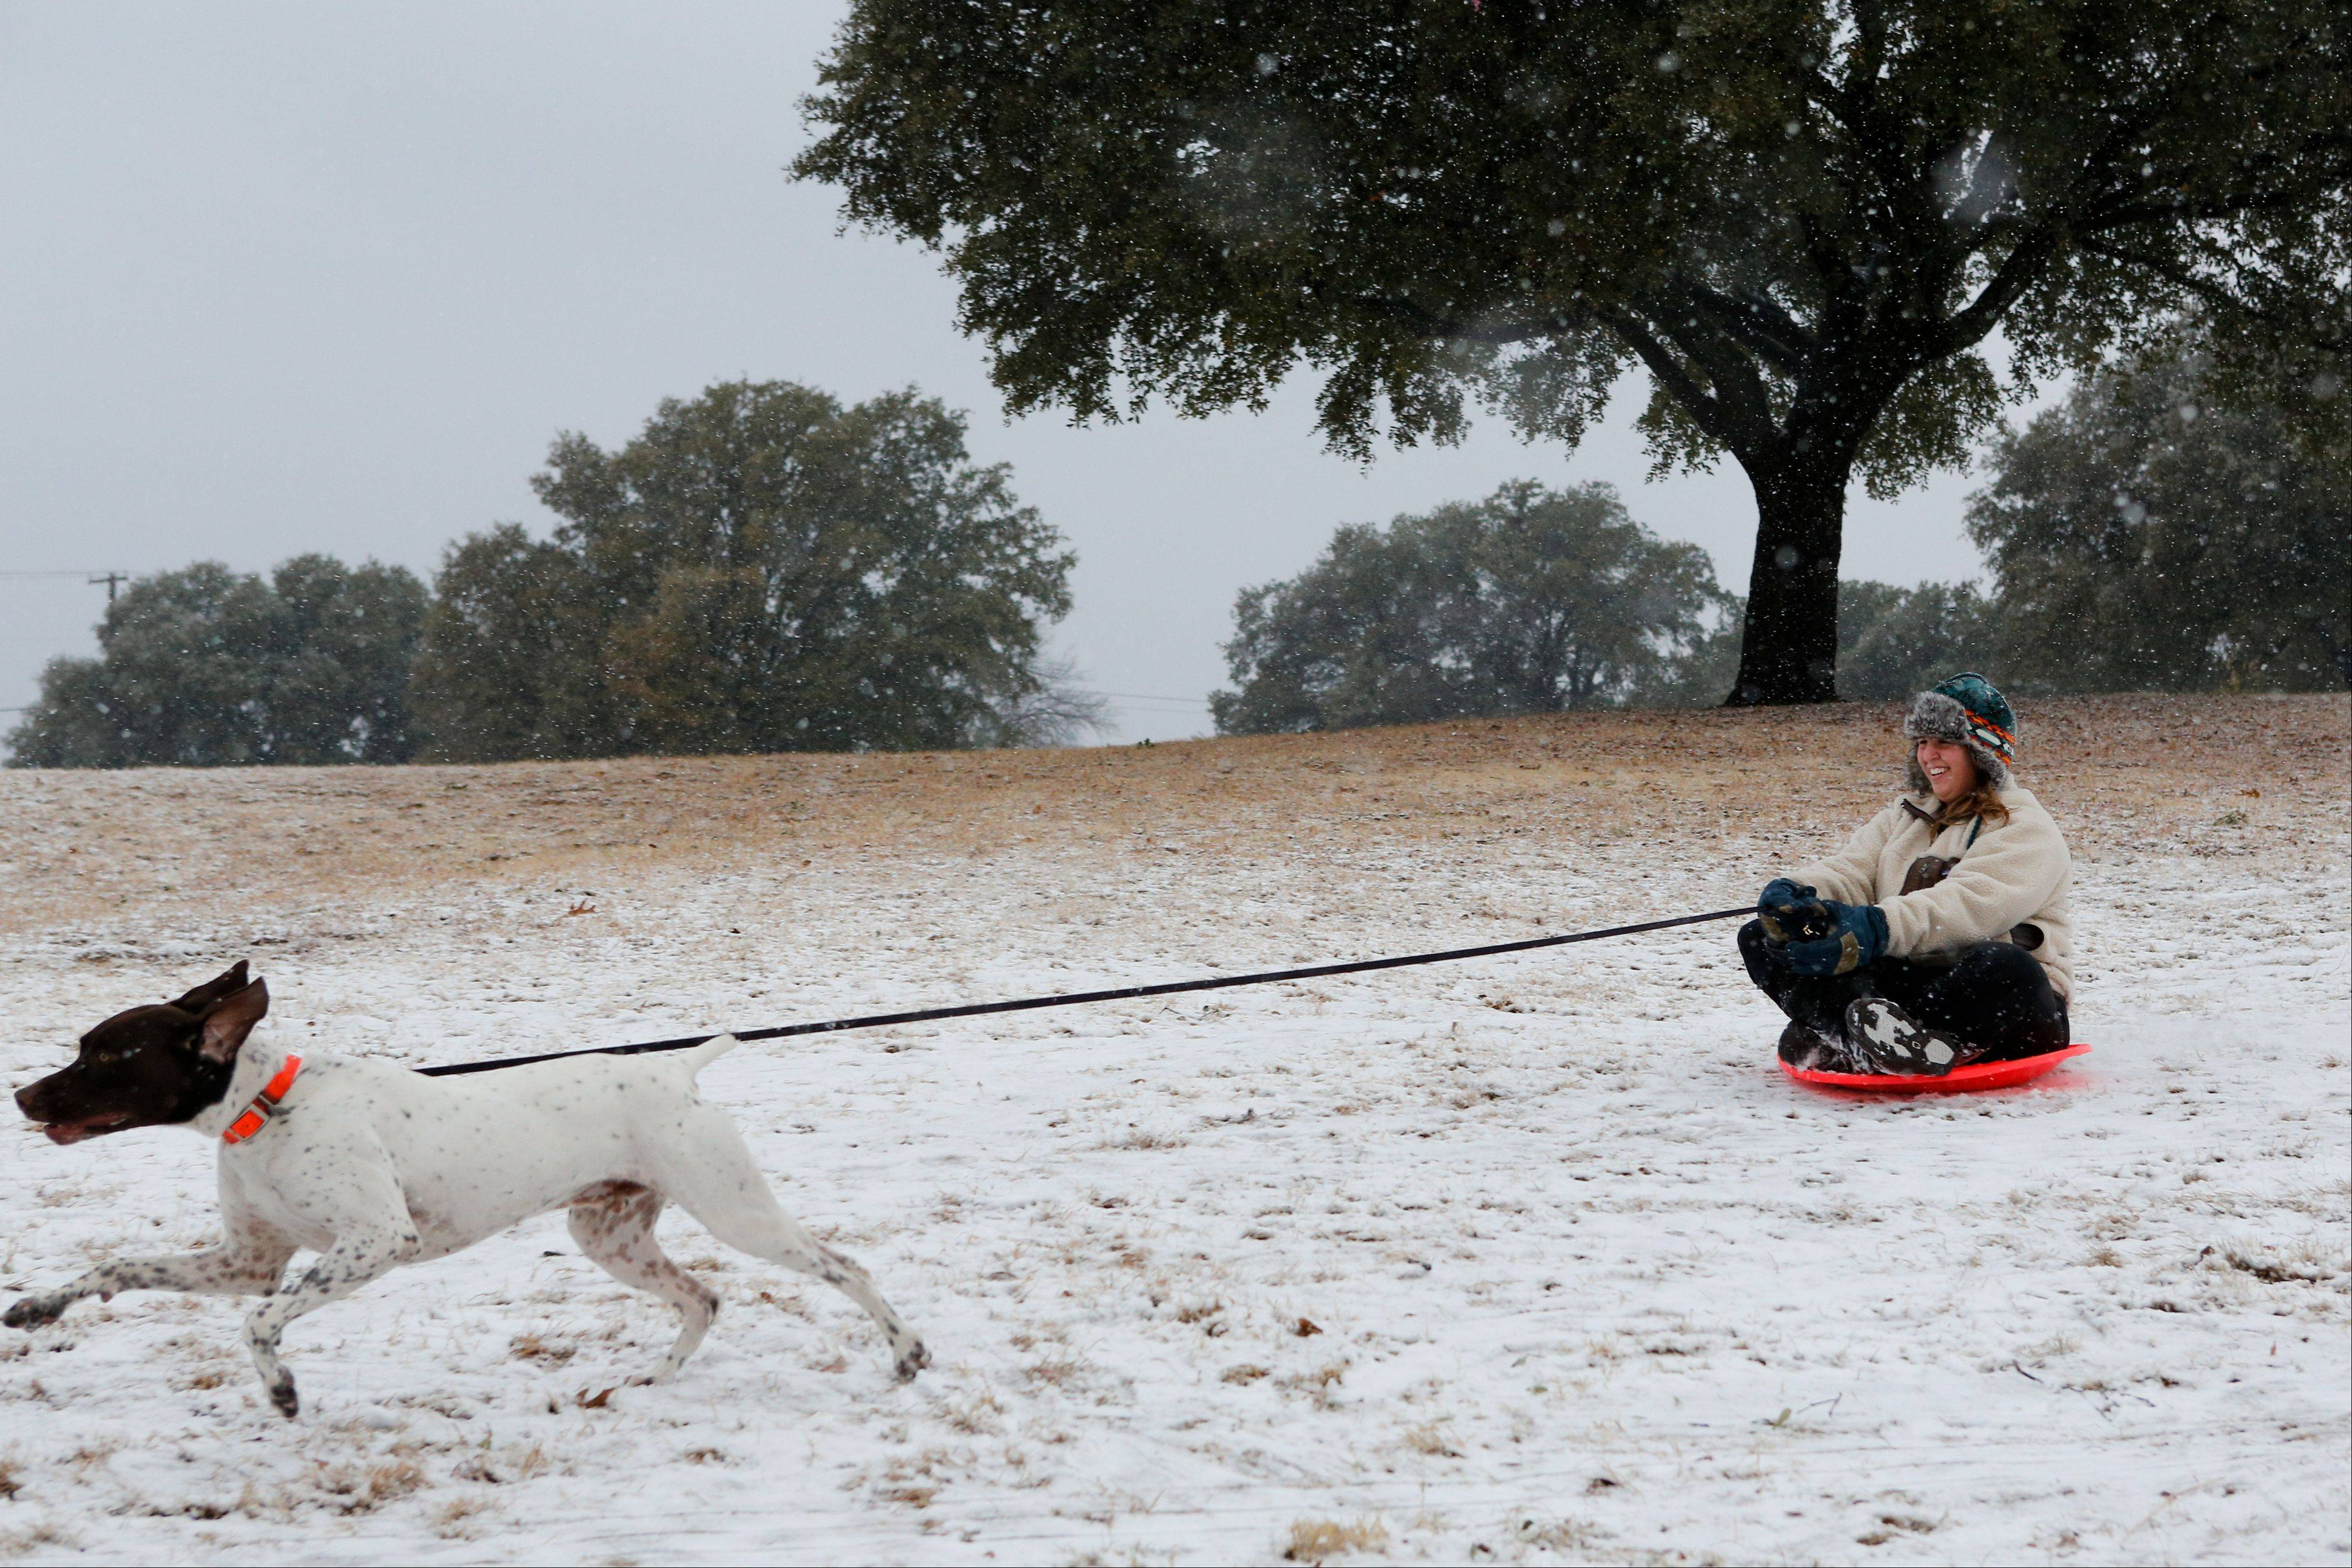 Lauren LaSalle is pulled down a hill on a sled by her dog Hank at Flagpole Hill Park in Dallas, on Tuesday, Dec. 25, 2012.